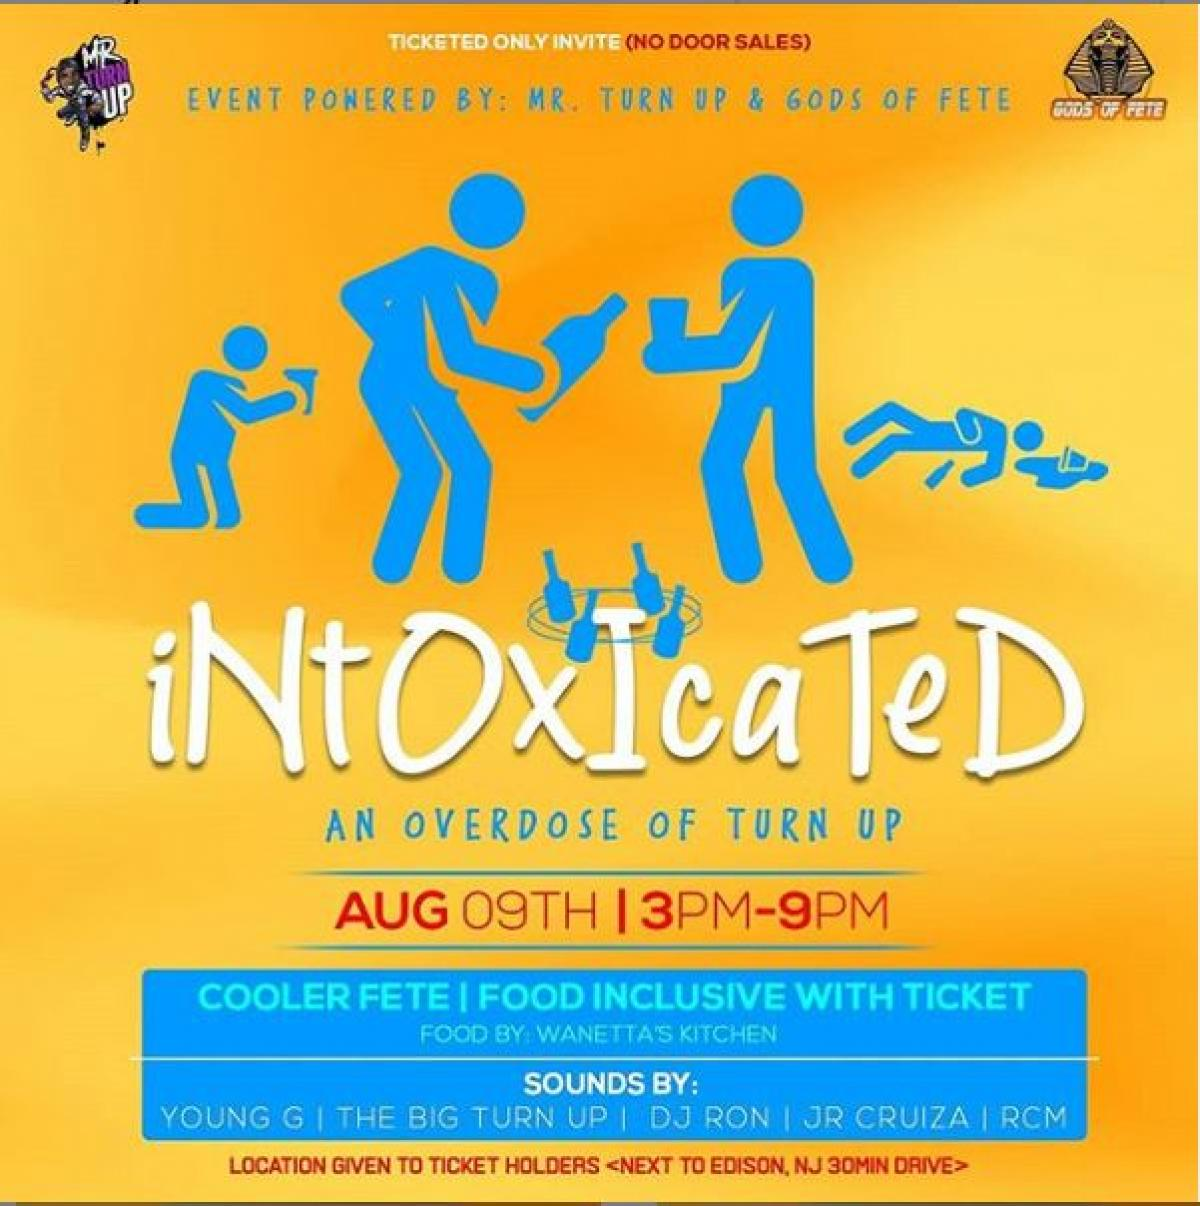 Intoxicated flyer or graphic.